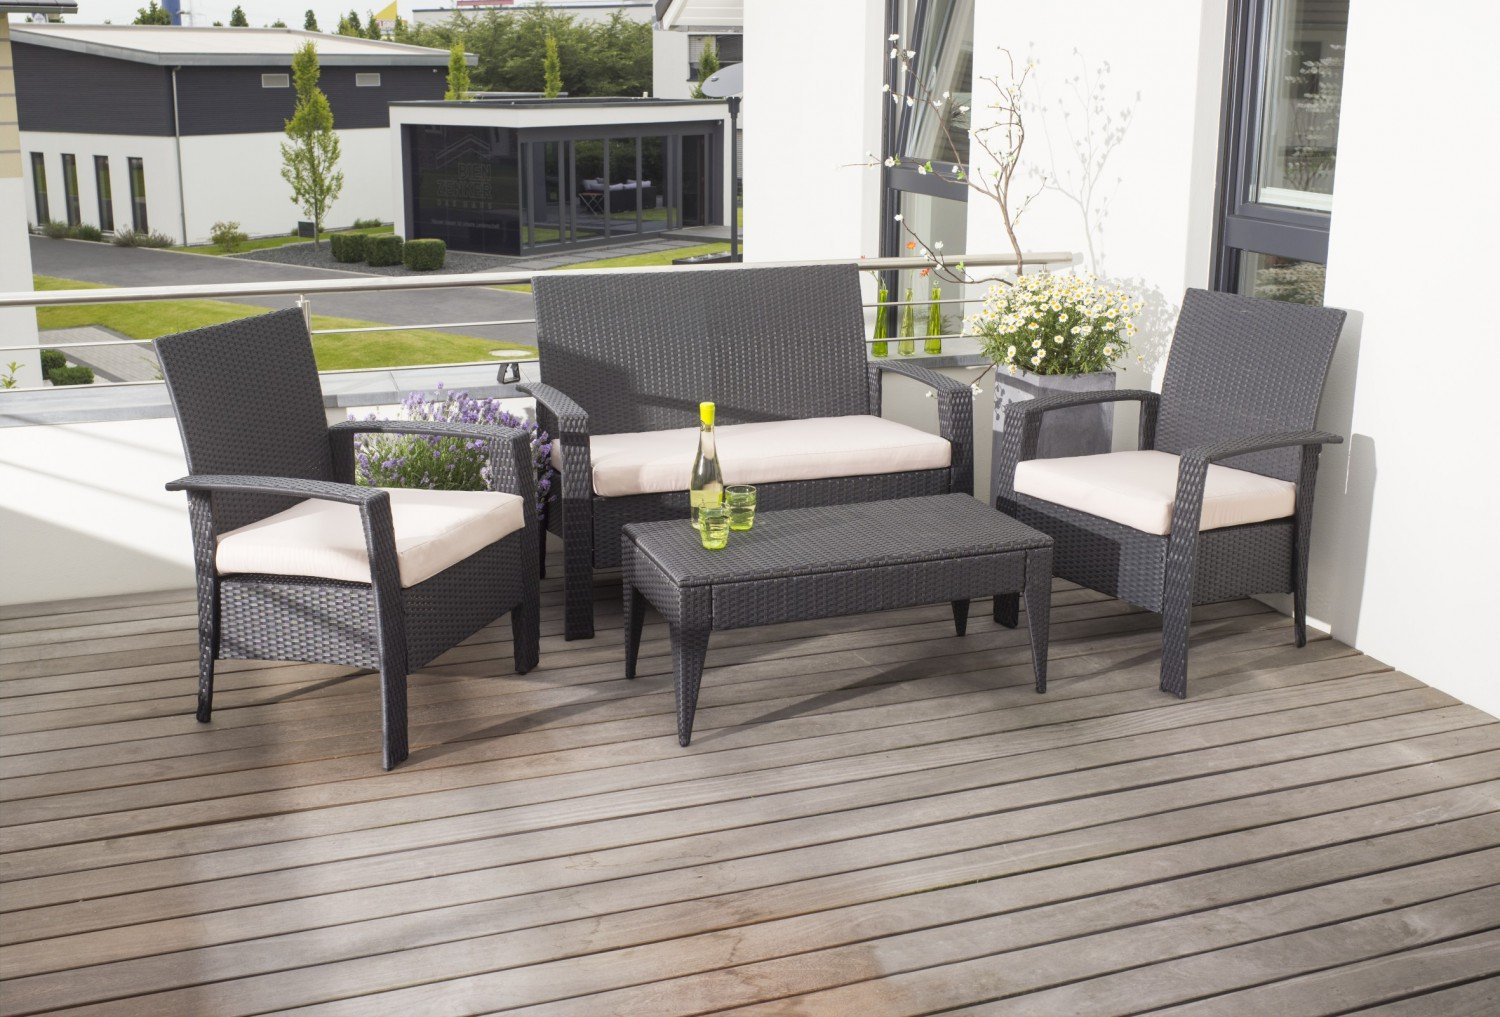 greemotion lounge set bergamo rattan 4 teilig schwarz g nstig online kaufen. Black Bedroom Furniture Sets. Home Design Ideas